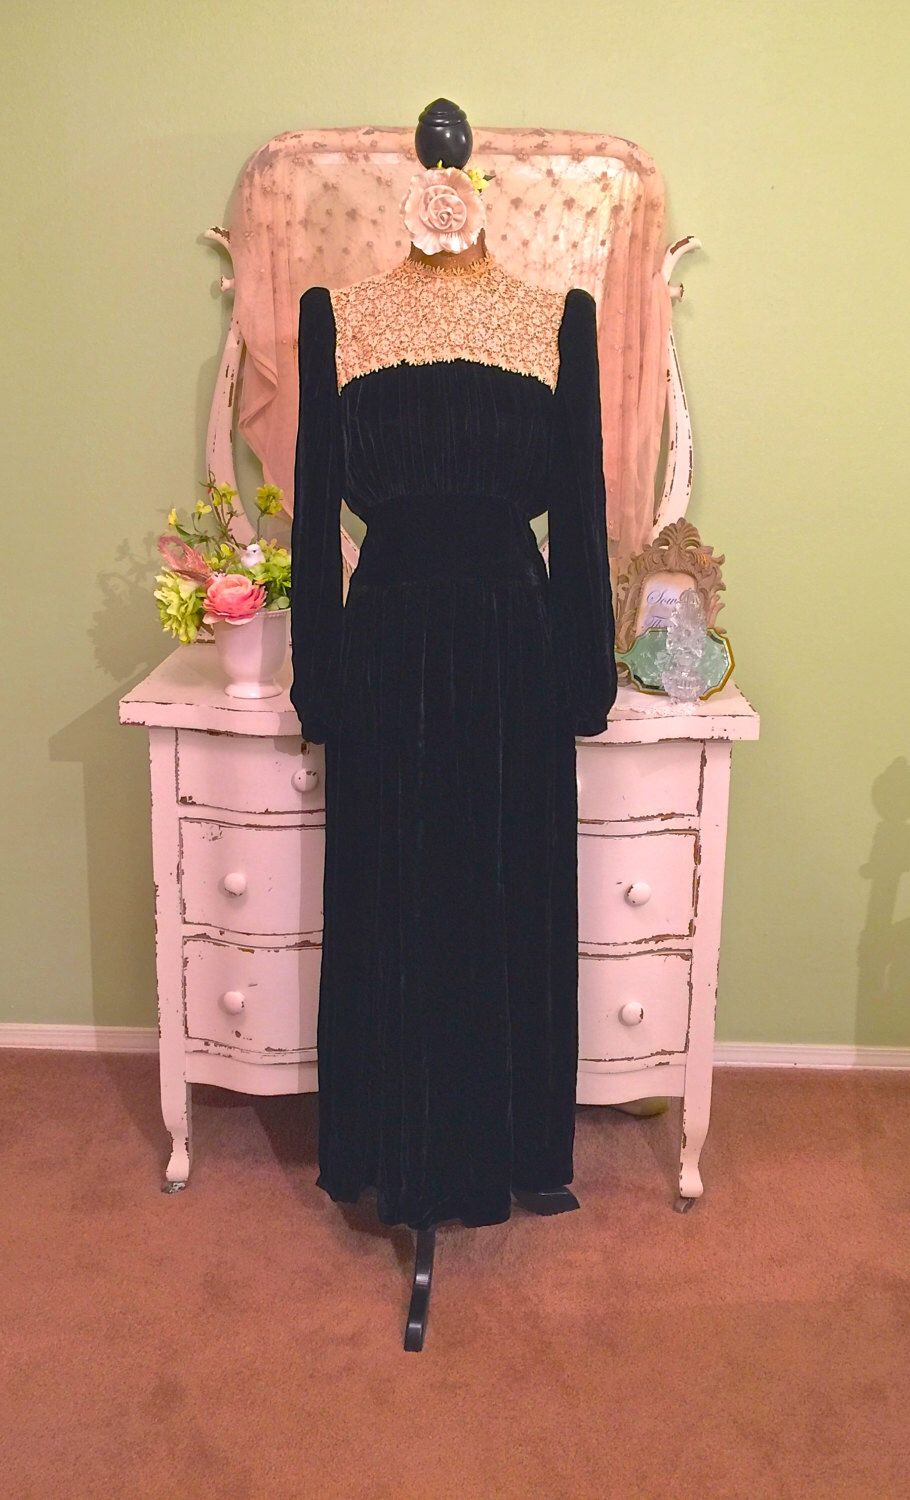 S s evening gown lace rhinestone dress s wwii dress